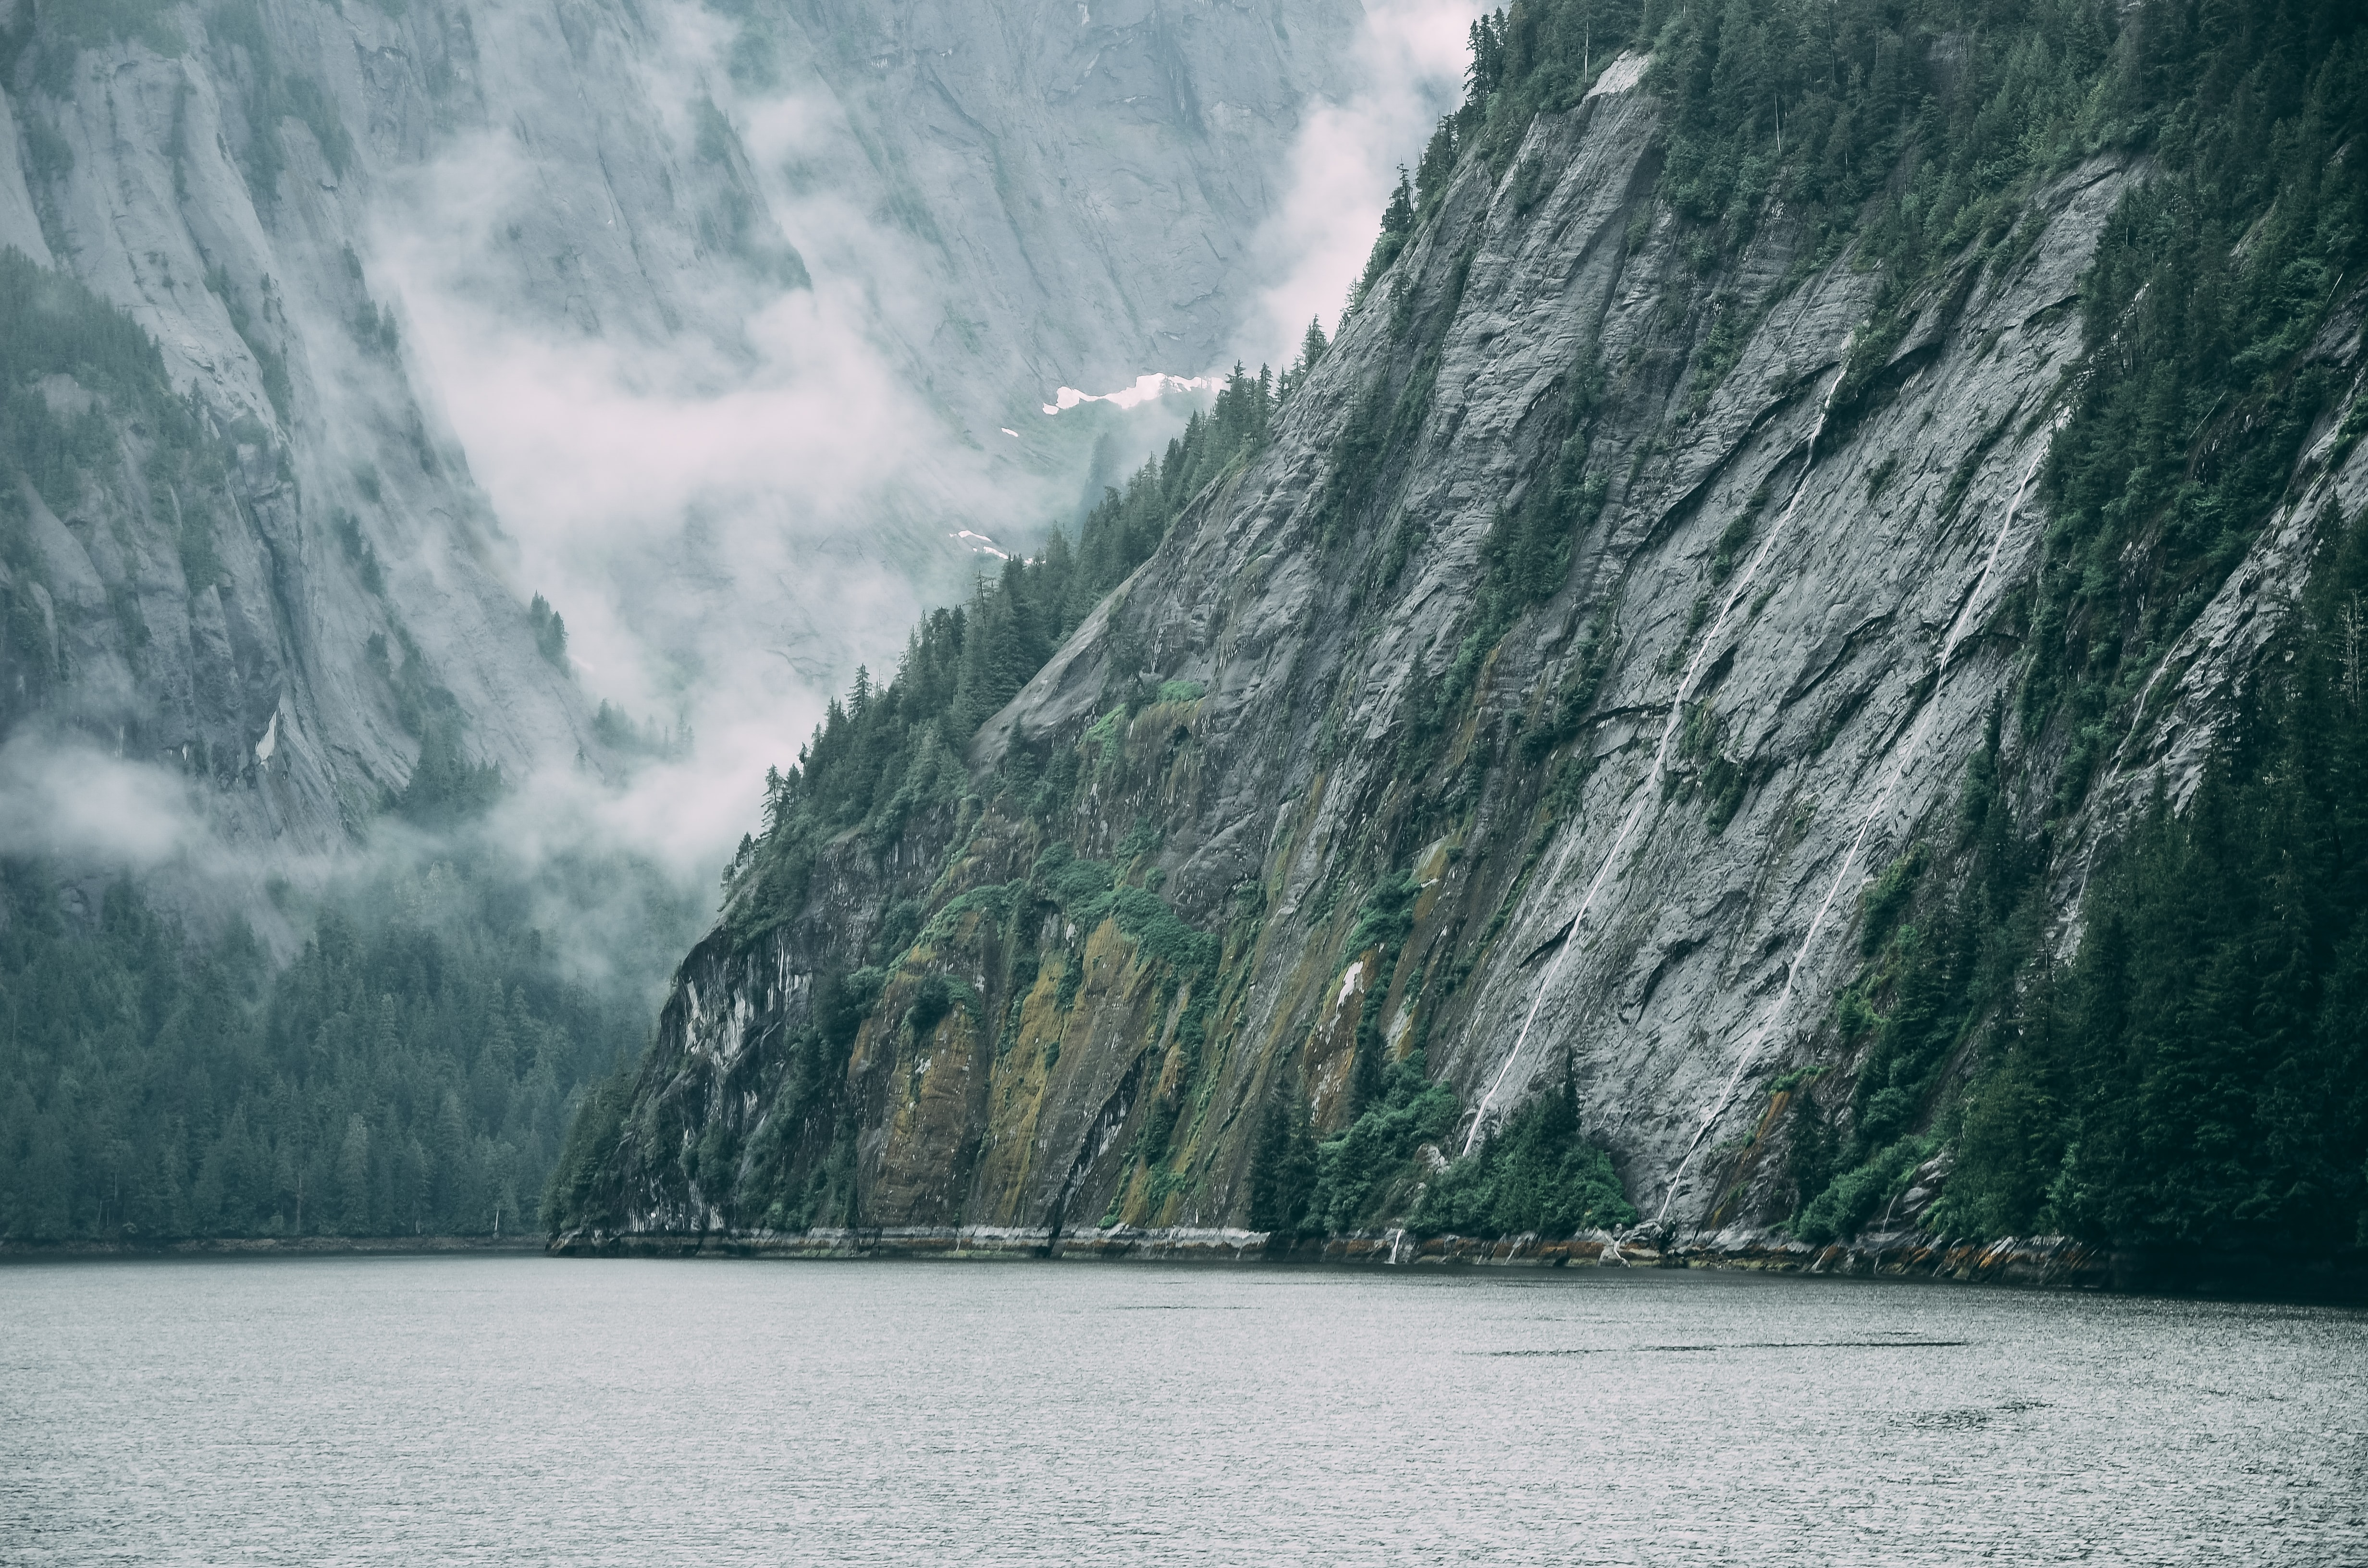 Rocky mountainsides line a serene lake on a foggy day in Alaska